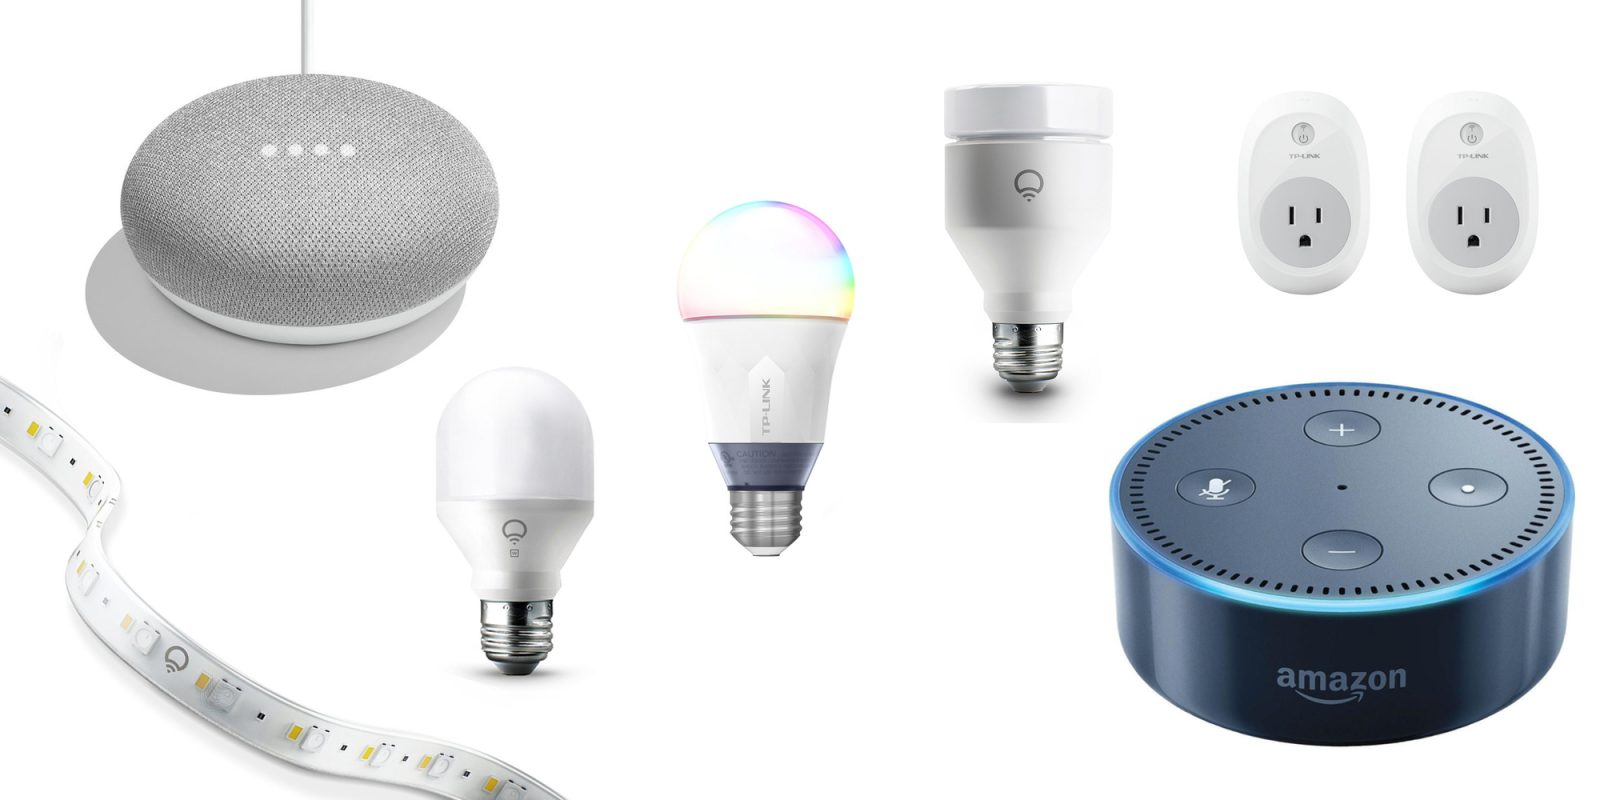 these smart home gadgets take your new amazon echo or google home to the next level 9to5toys. Black Bedroom Furniture Sets. Home Design Ideas